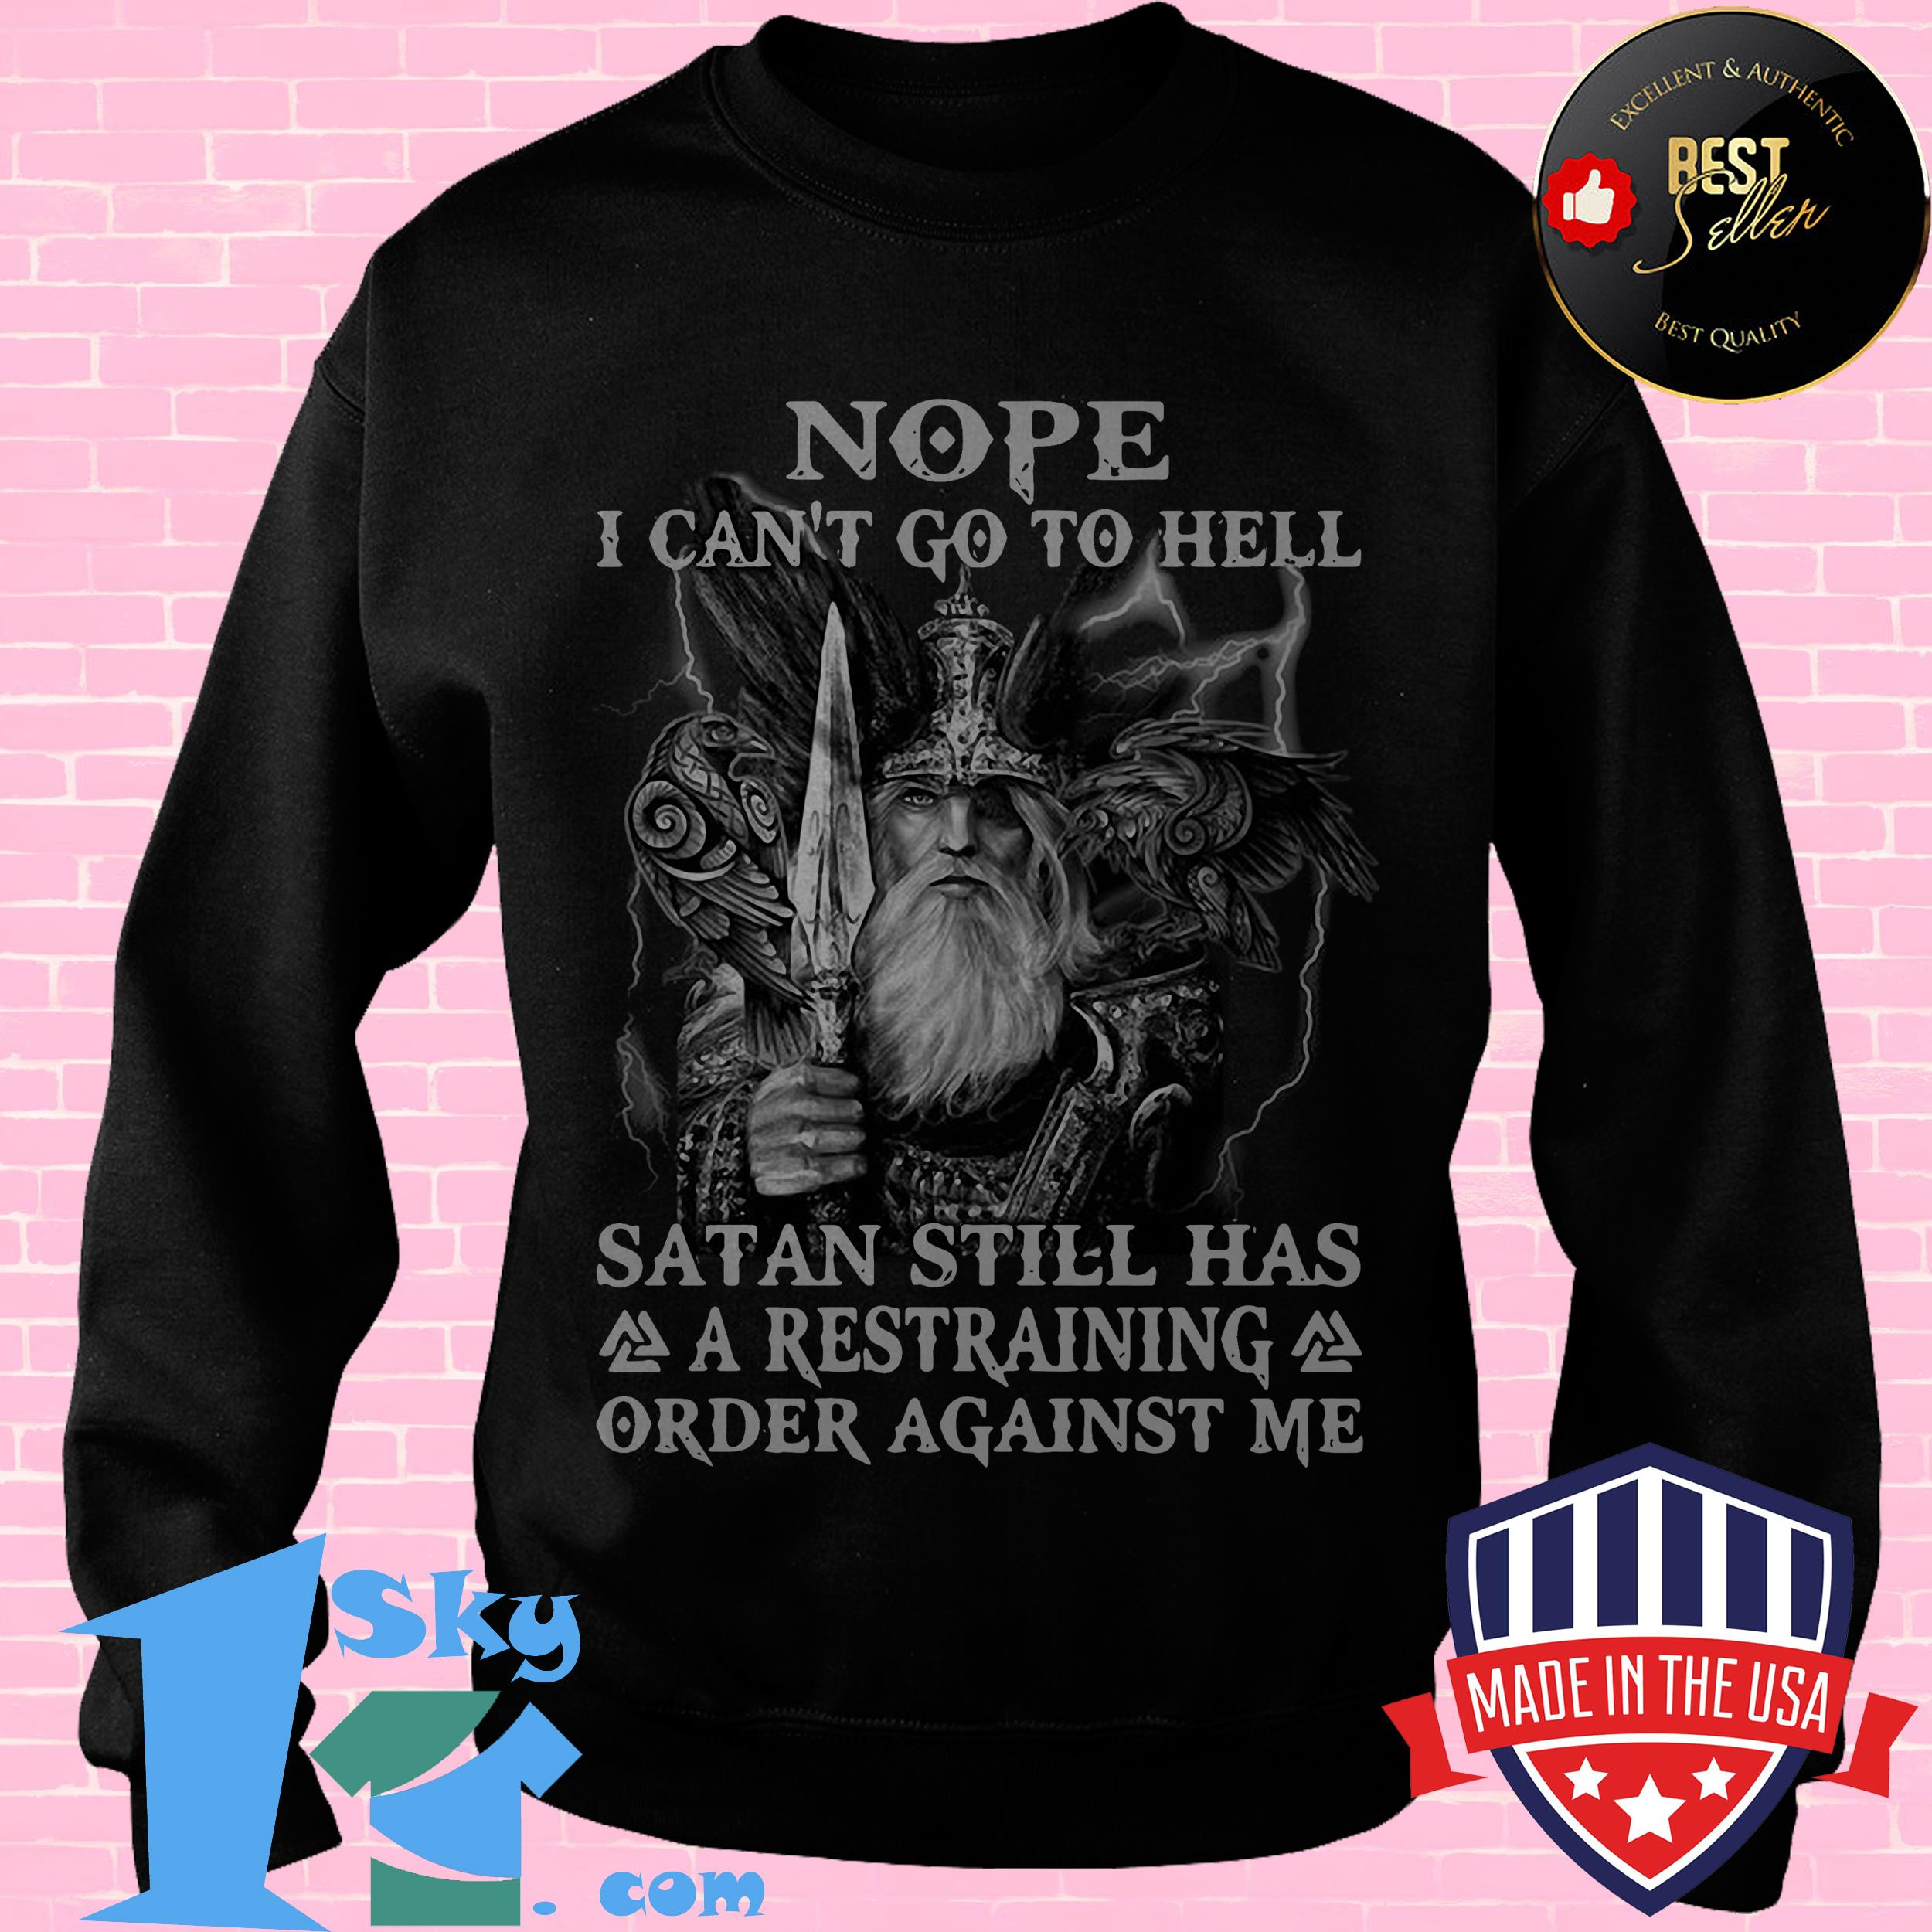 nope i cant go to hell satan still has a restraining order against me sweatshirt - Nope I Can't Go To Hell Satan Still Has A Restraining Order Against Me Shirt